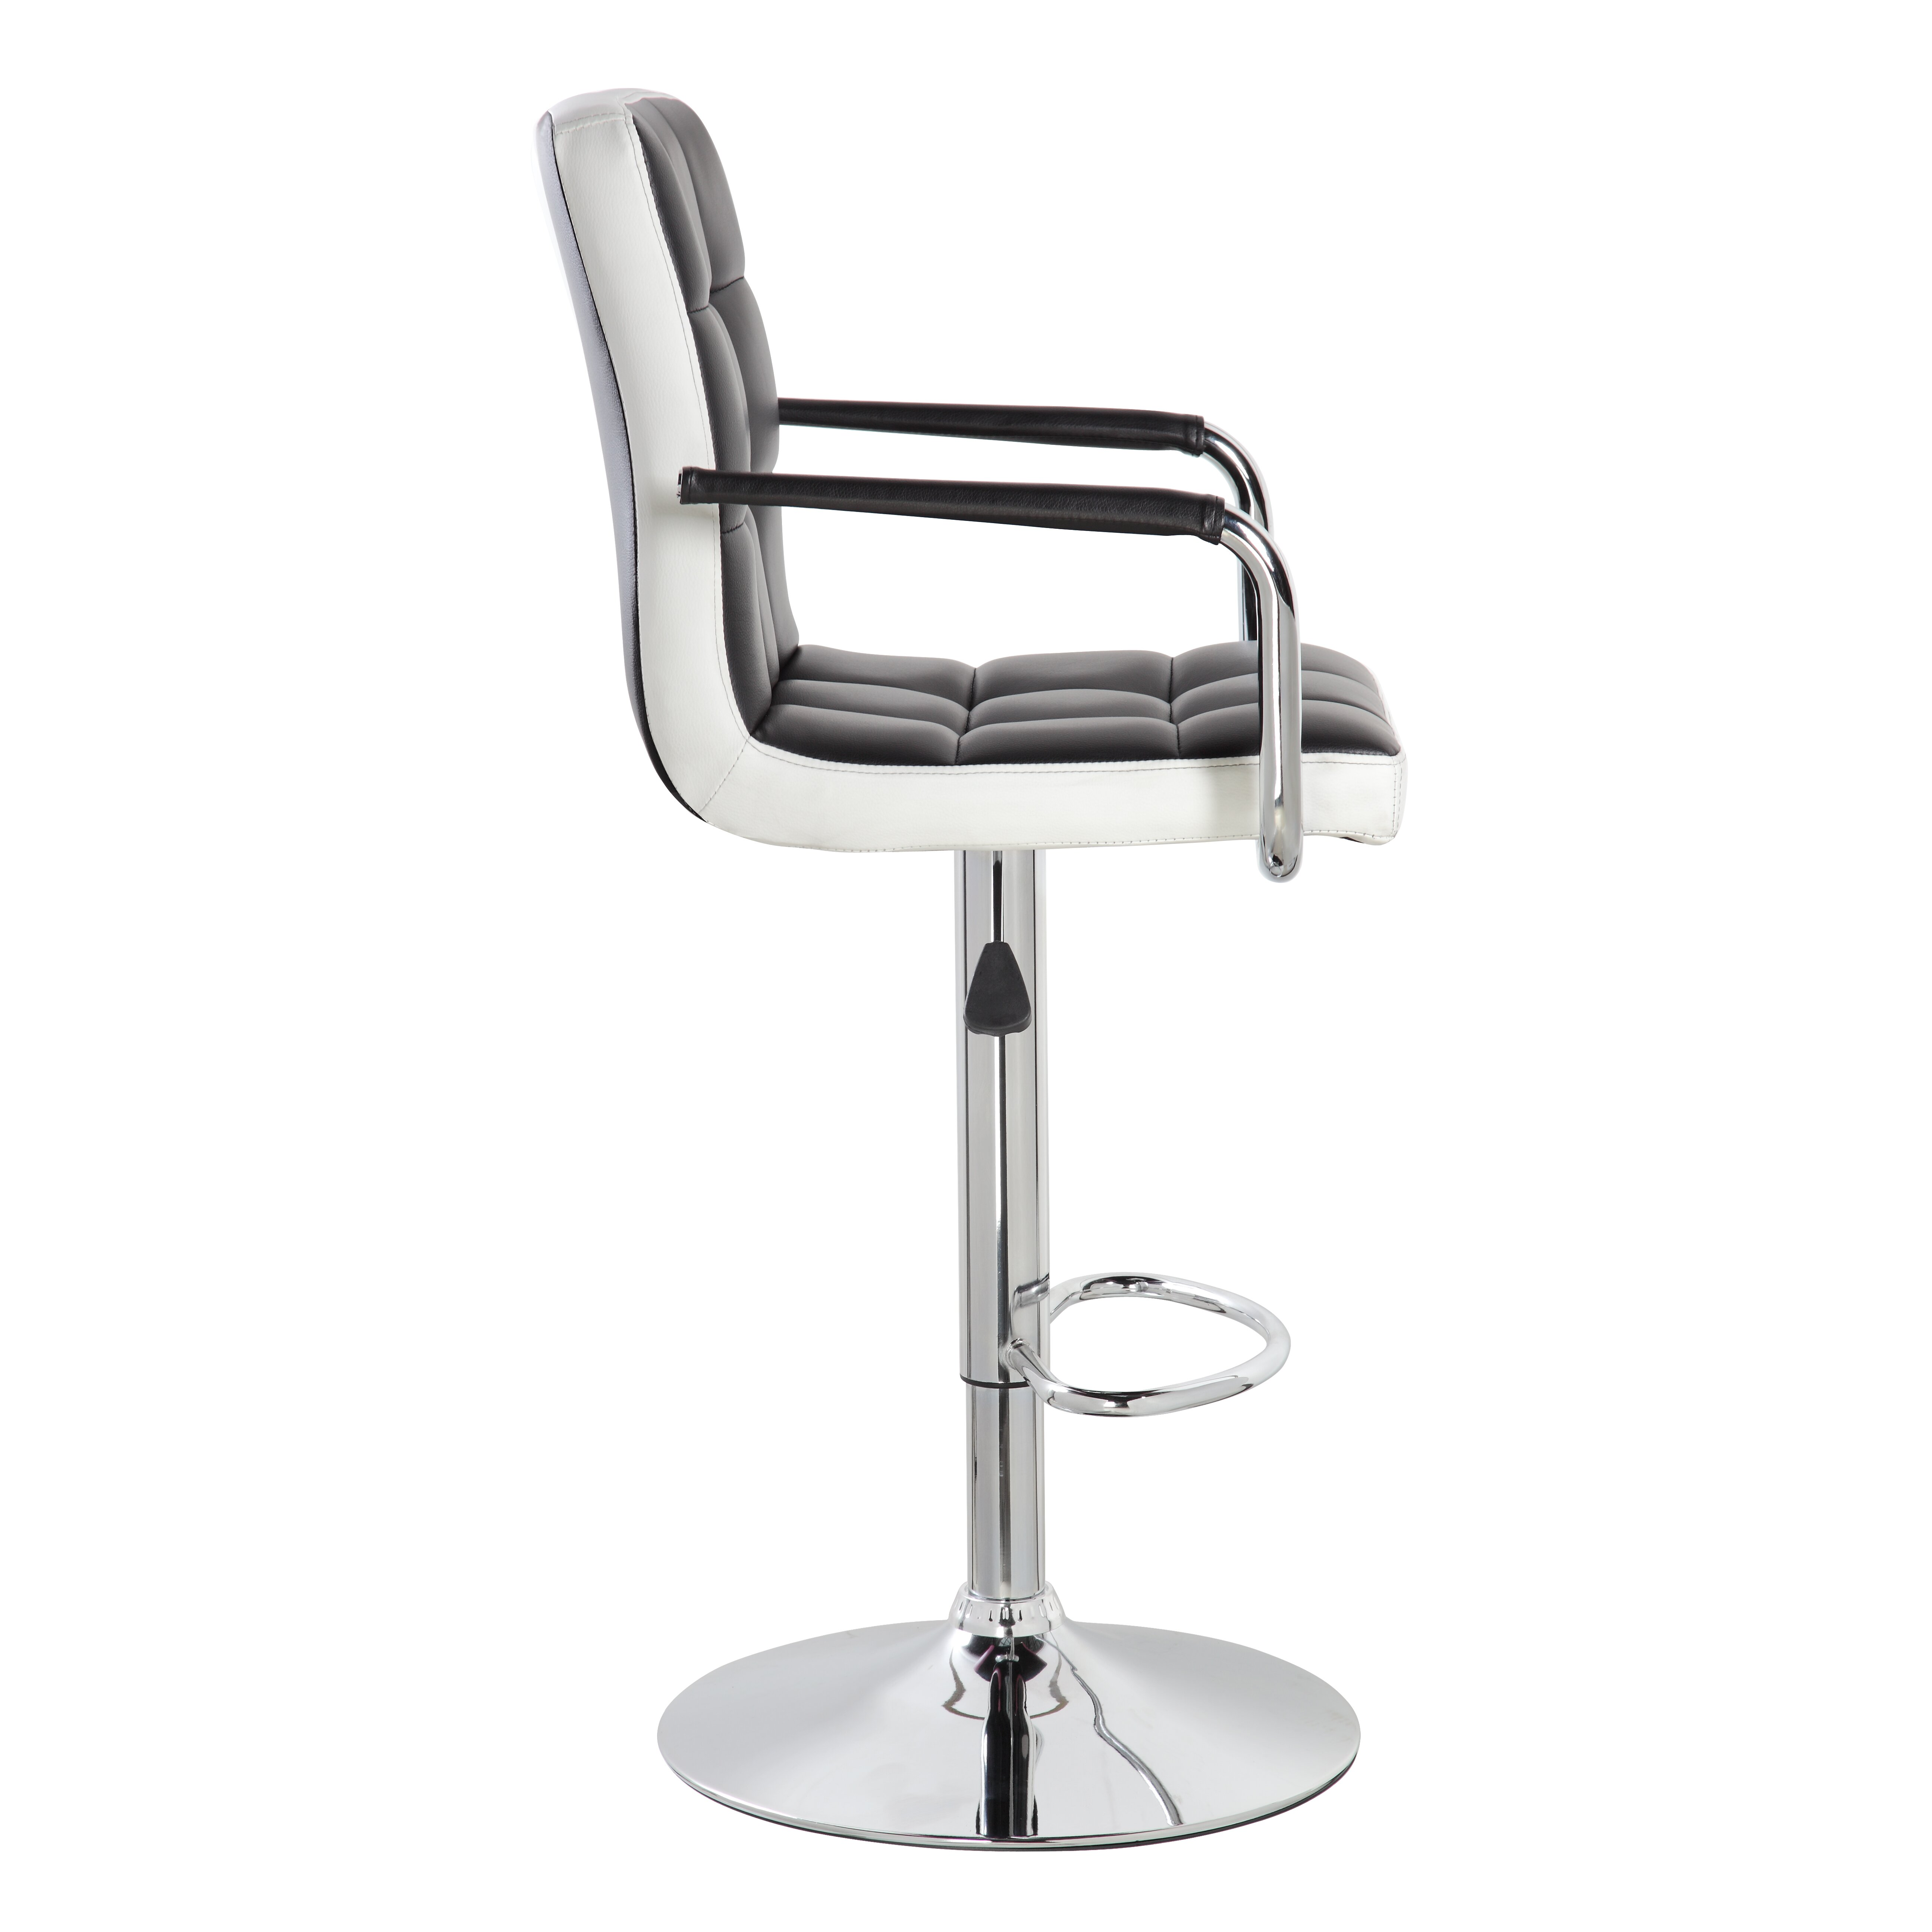 Best Interior Ideas kingofficeus : United Office Chair Adjustable Height Swivel Bar Stool with Cushion from kingoffice.us size 5181 x 5181 jpeg 917kB